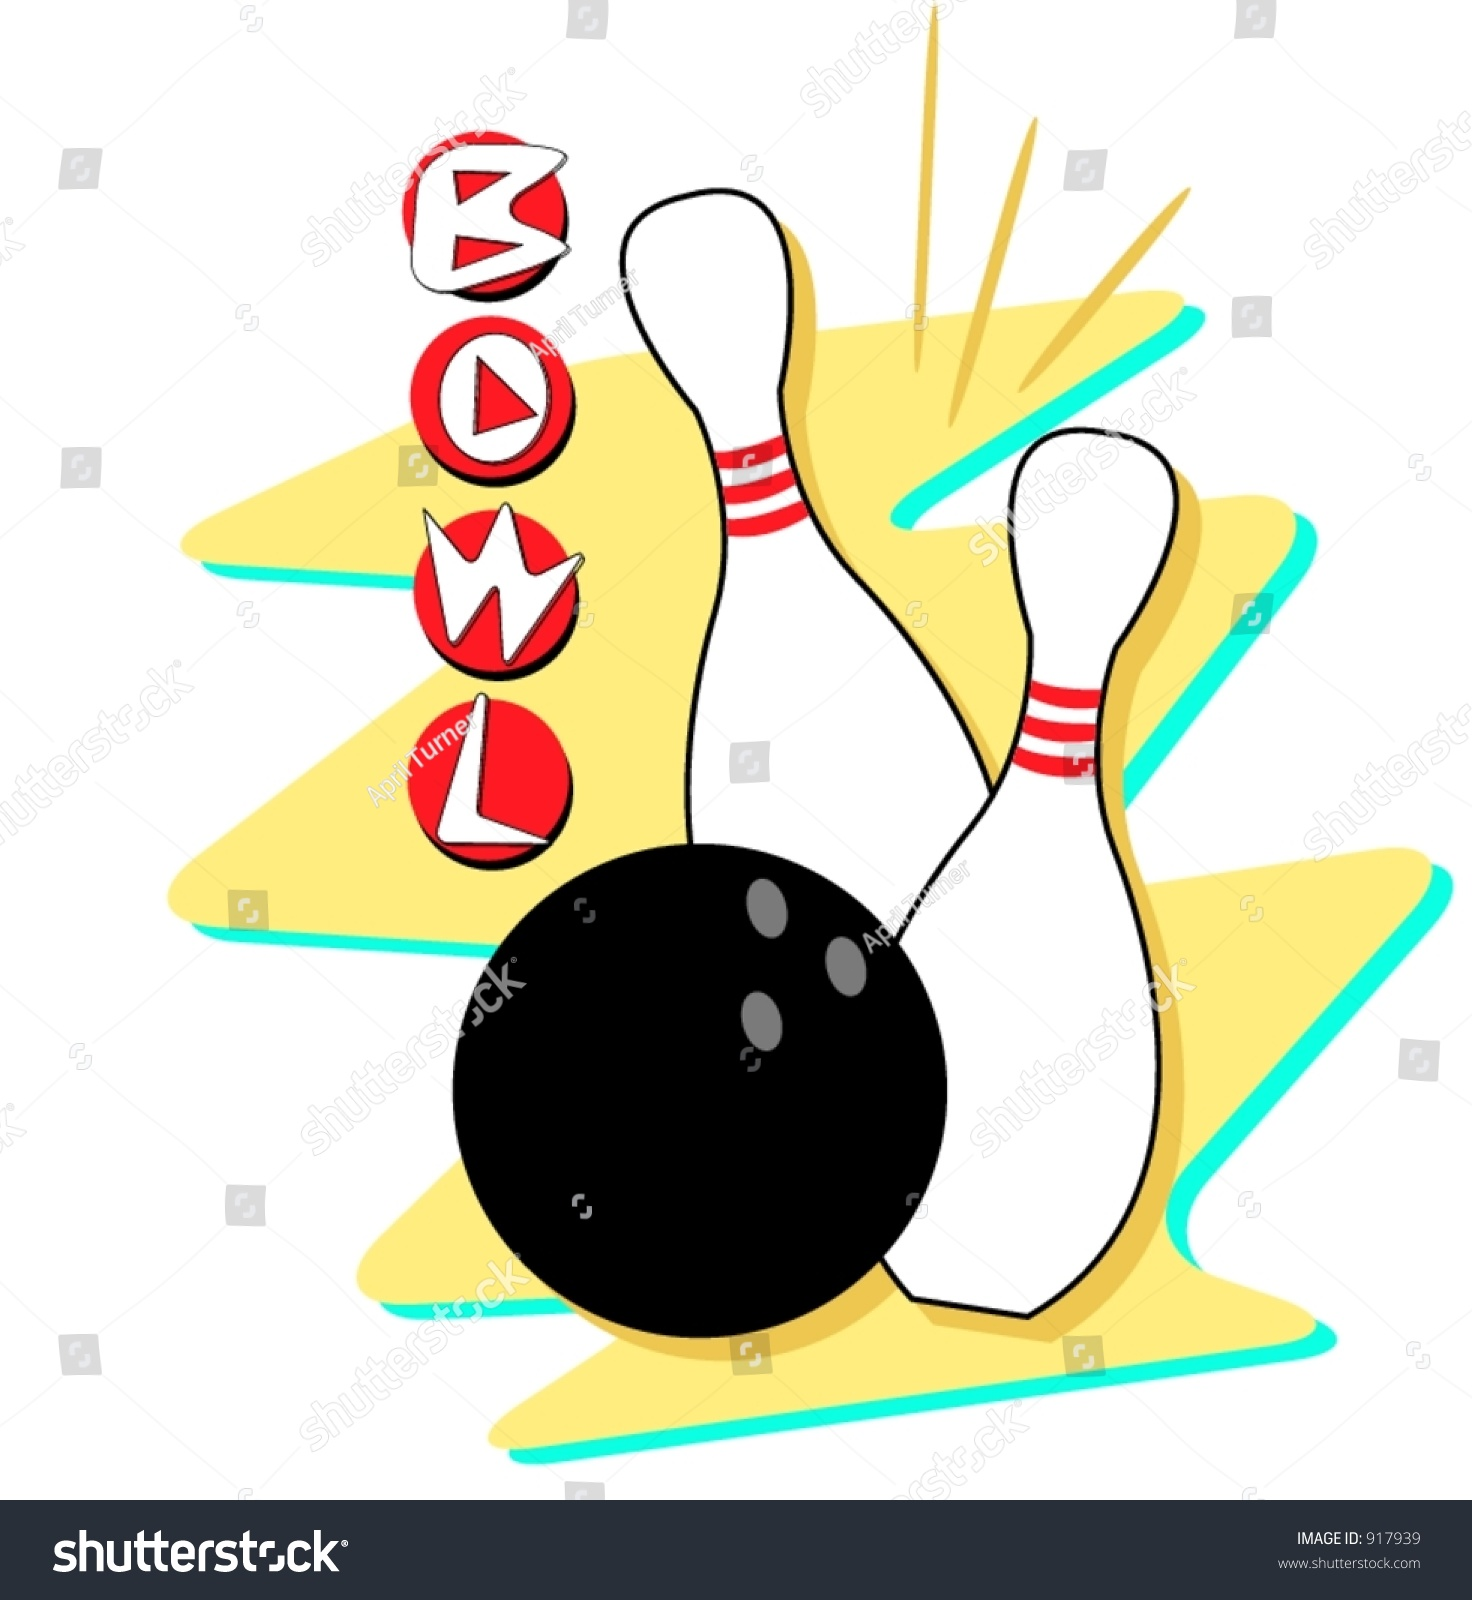 Retro Styled Bowling Clip Art Fully Stock Vector 917939 - Shutterstock